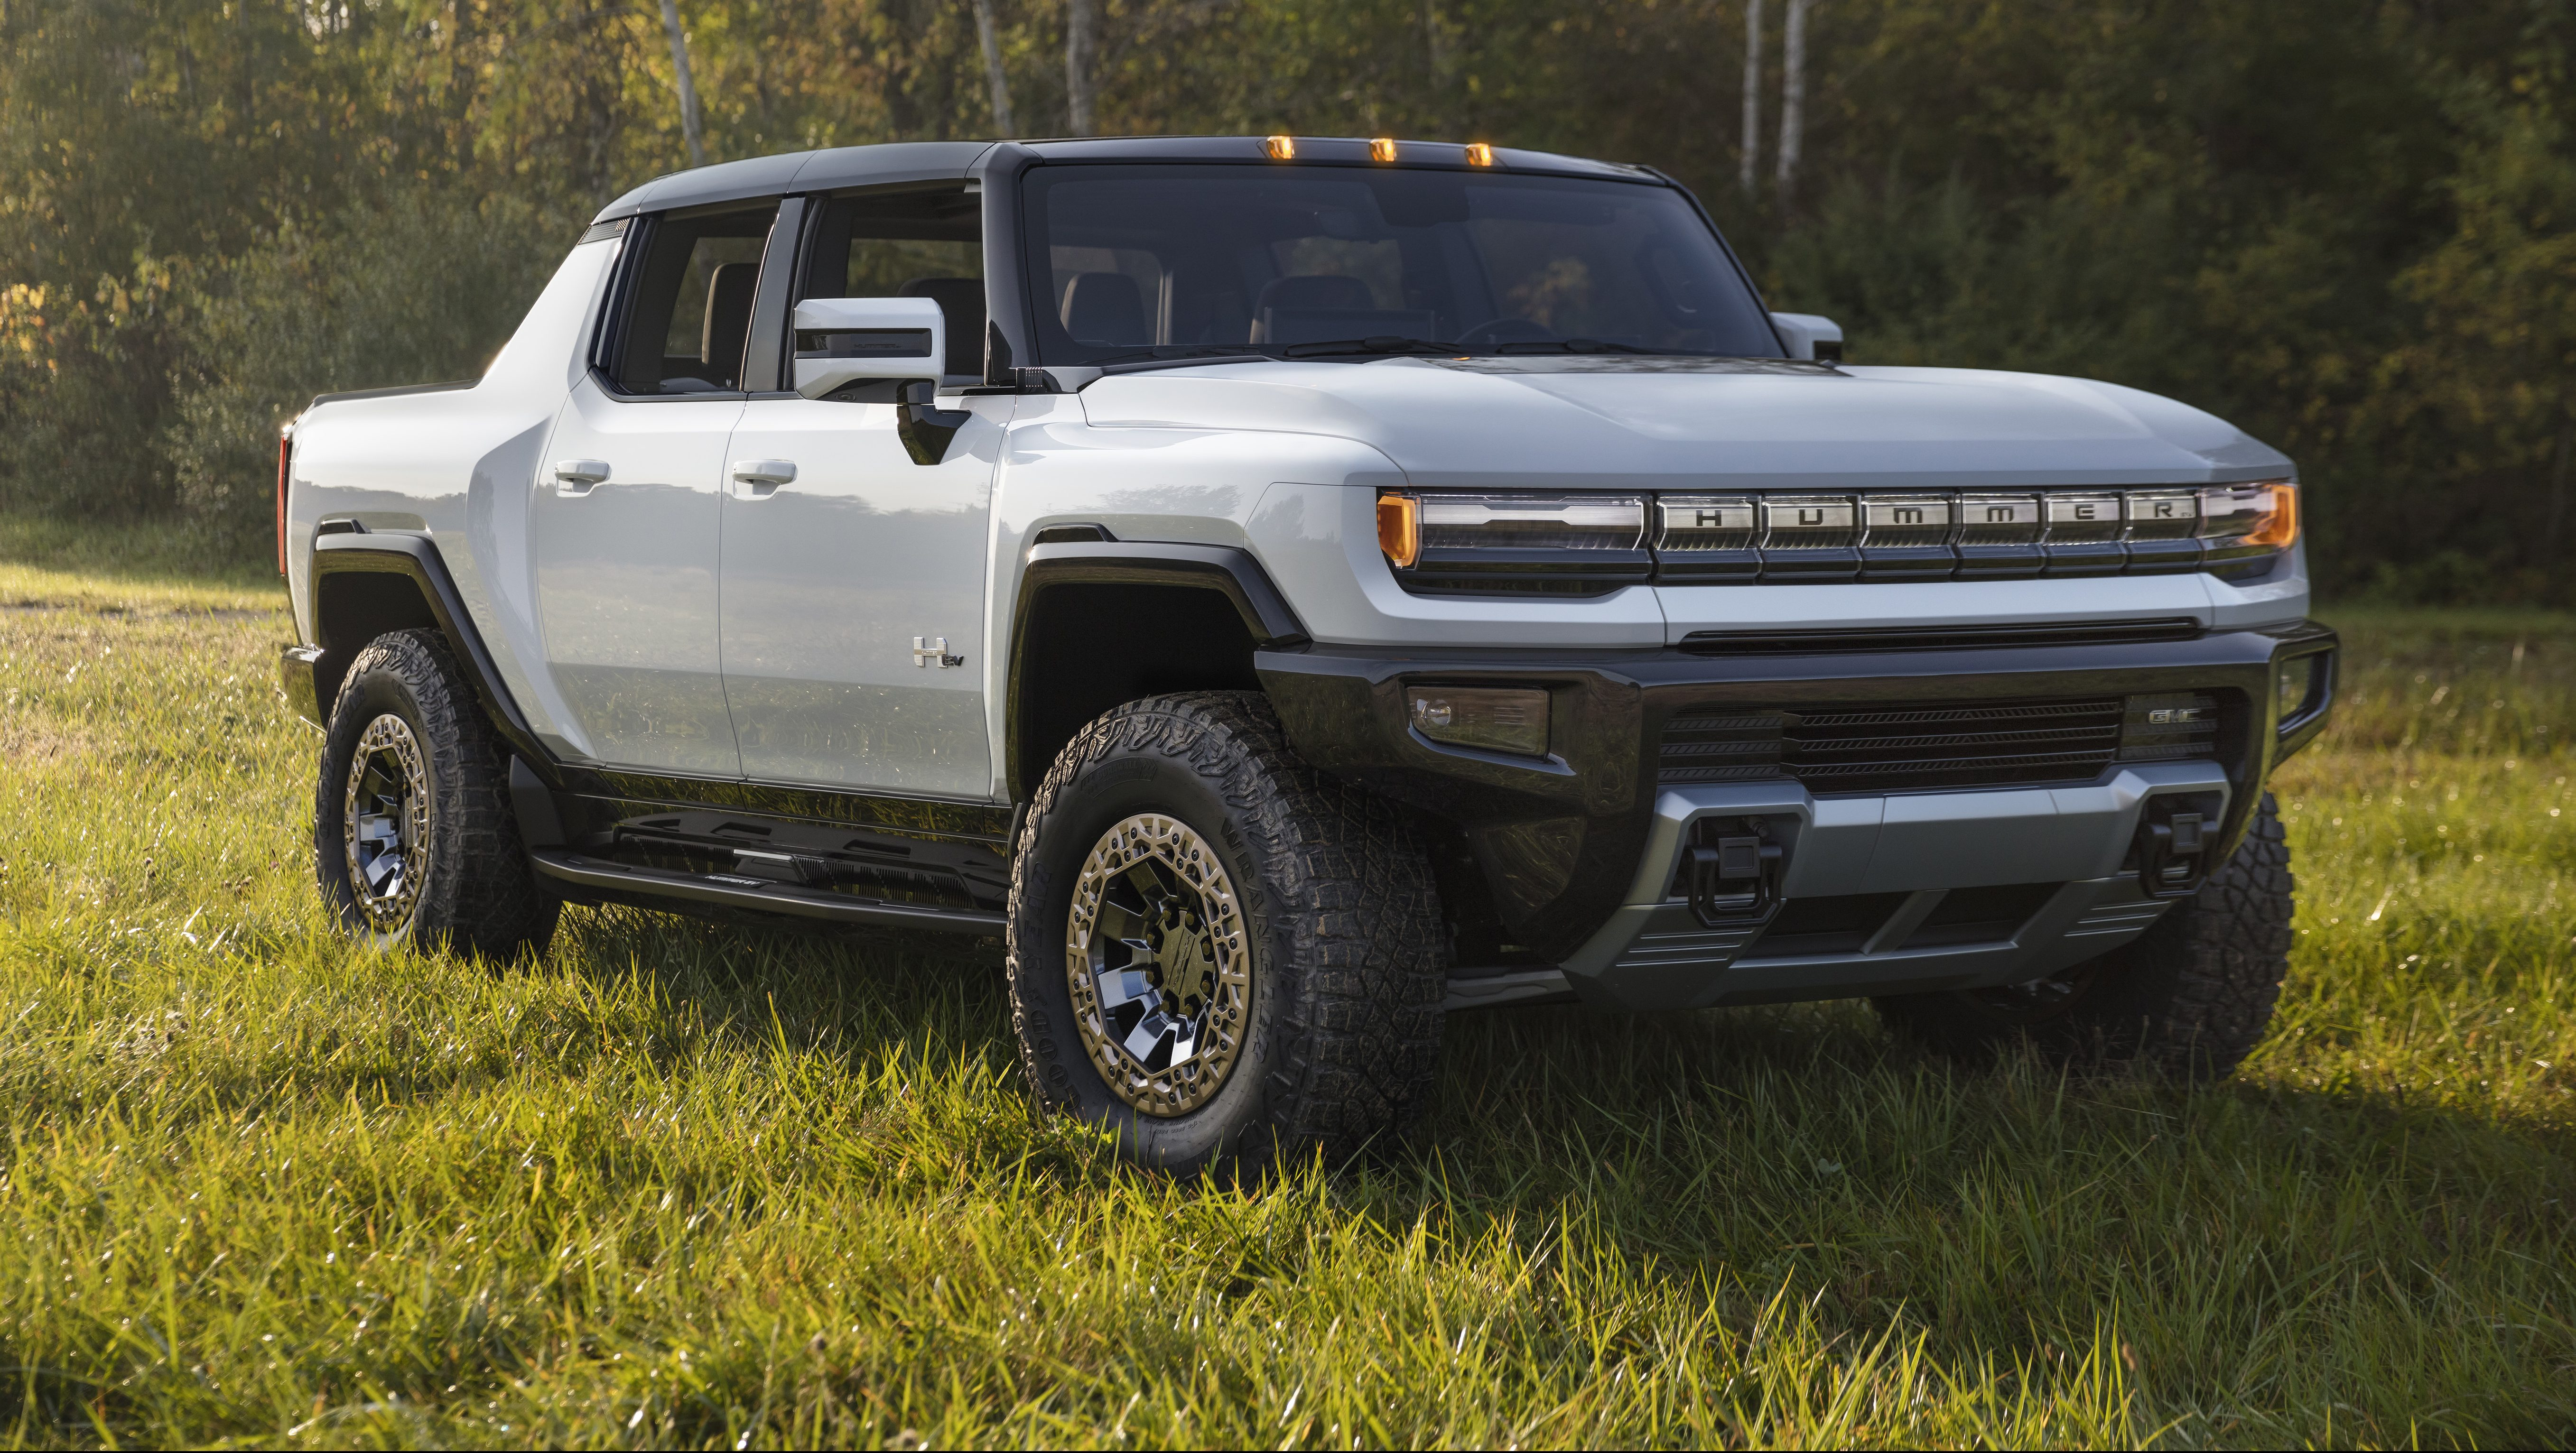 A photograph of a silver 2022 GMC Hummer EV parked in a field of grass.